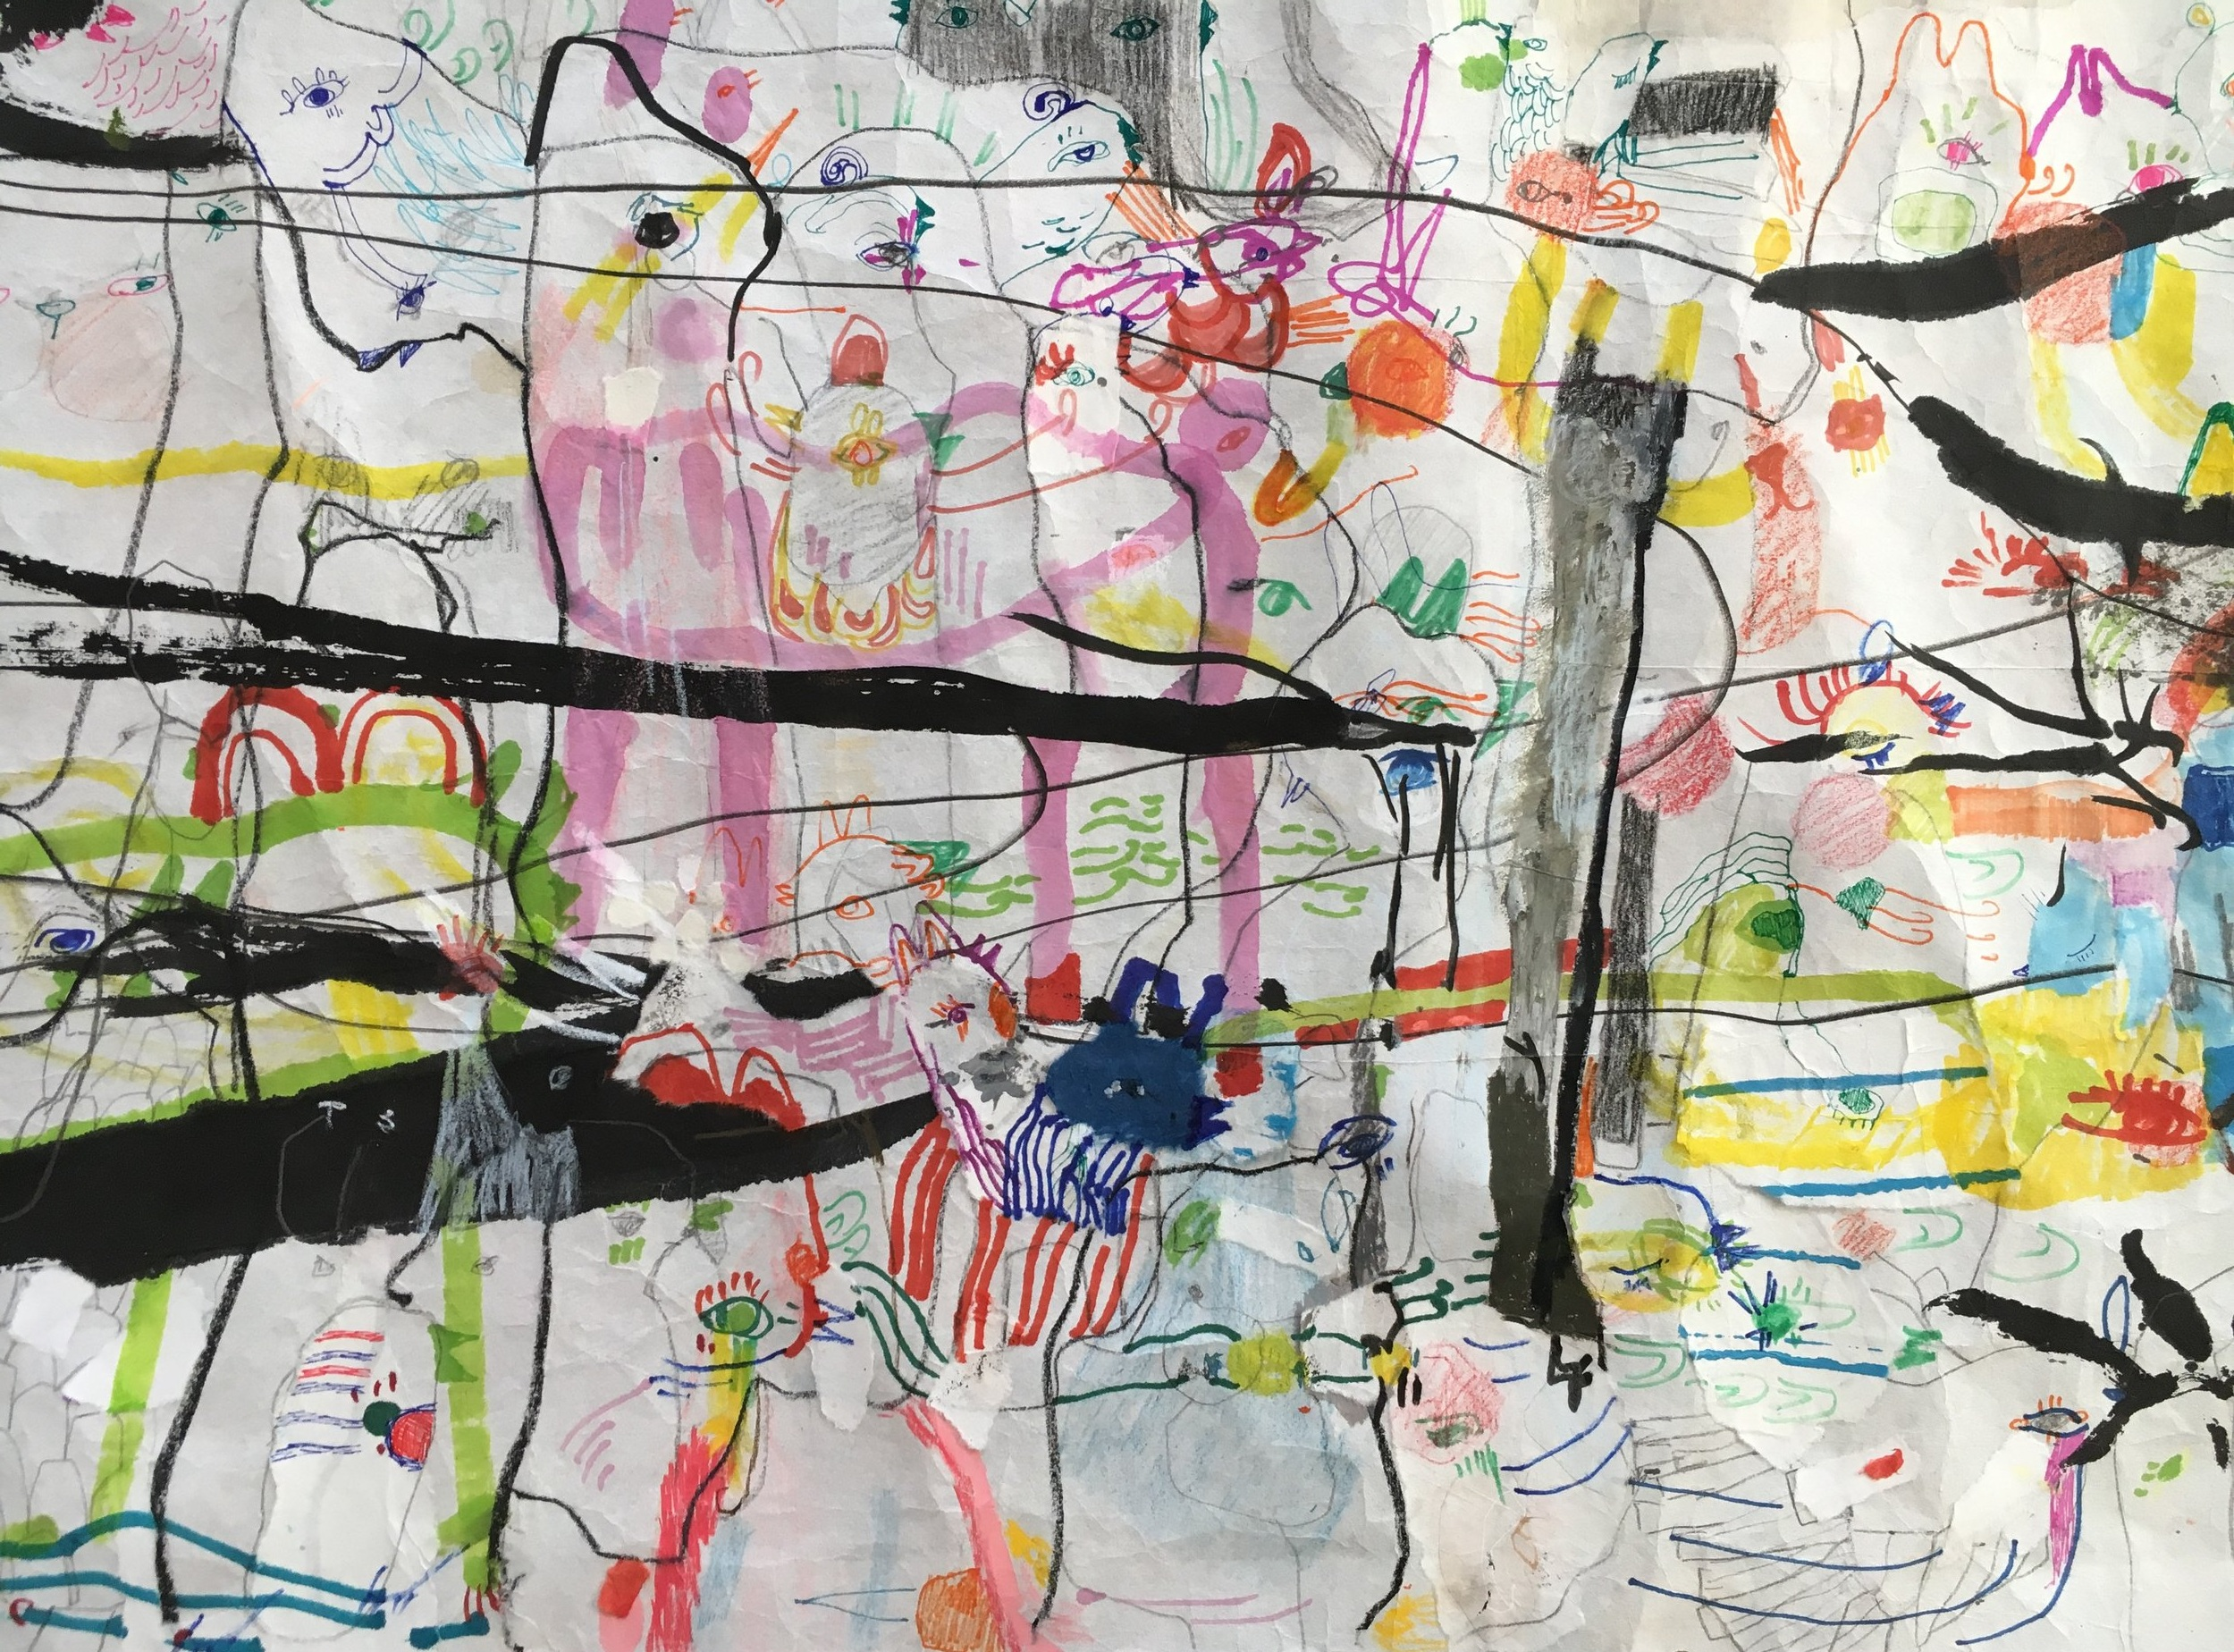 Up Above and All Around, Scroll Section 6  Ink, crayon, dye, watercolor, acrylic, pencil, and rice paper on mulberry paper 2.5 x 30 feet*